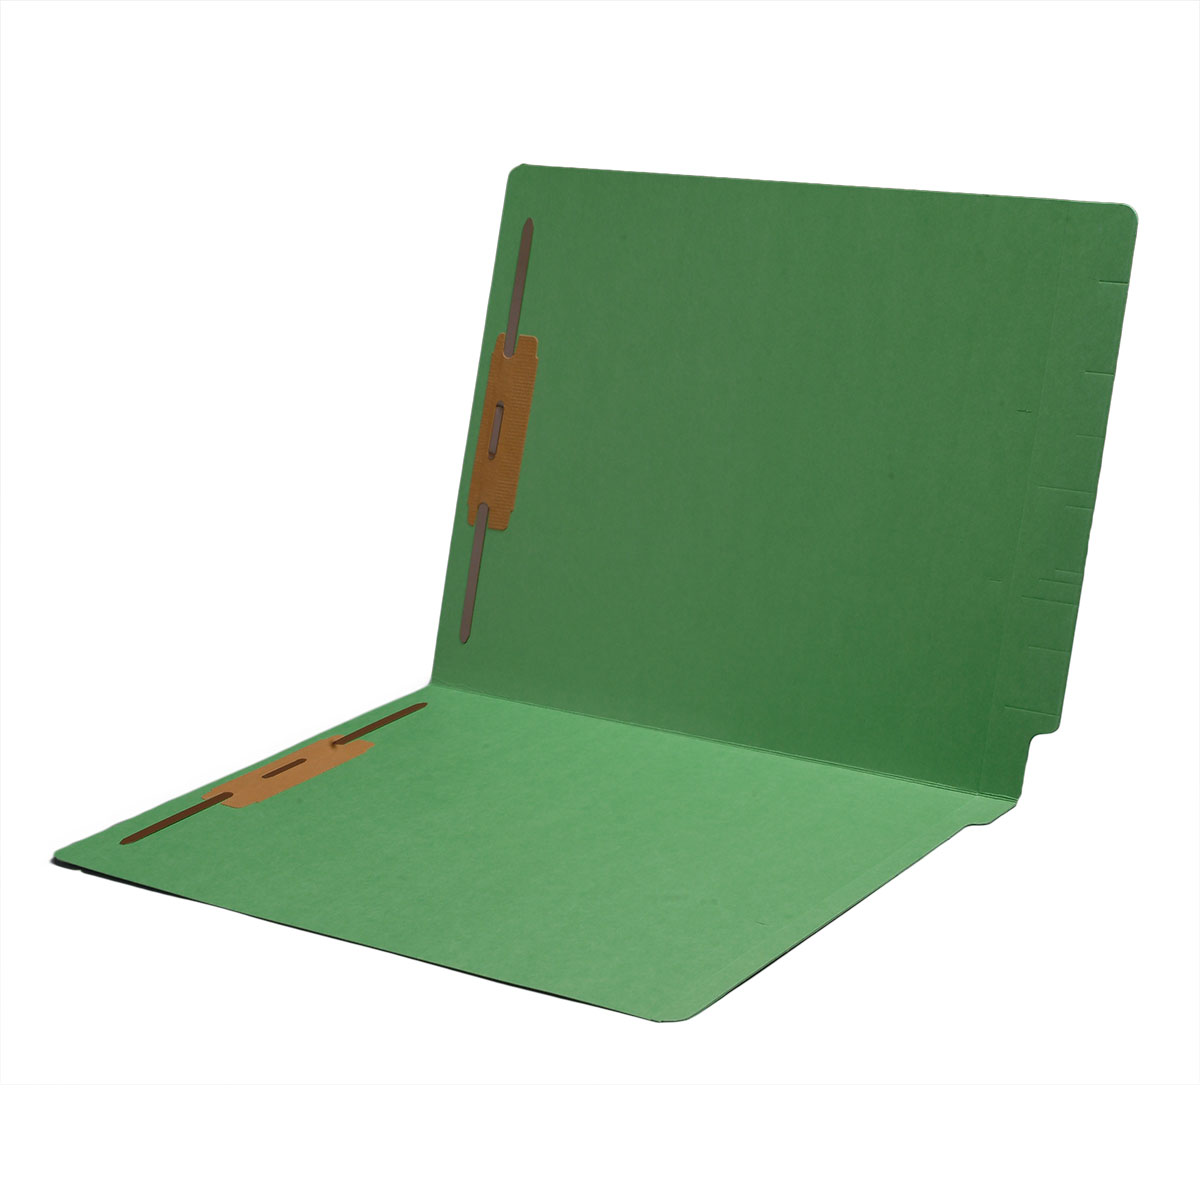 S-1502-GRN - 11 pt Color Folders, Full Cut 2-Ply End Tab, Letter Size, Fasteners Pos #1 & #3, Green (Box of 50)